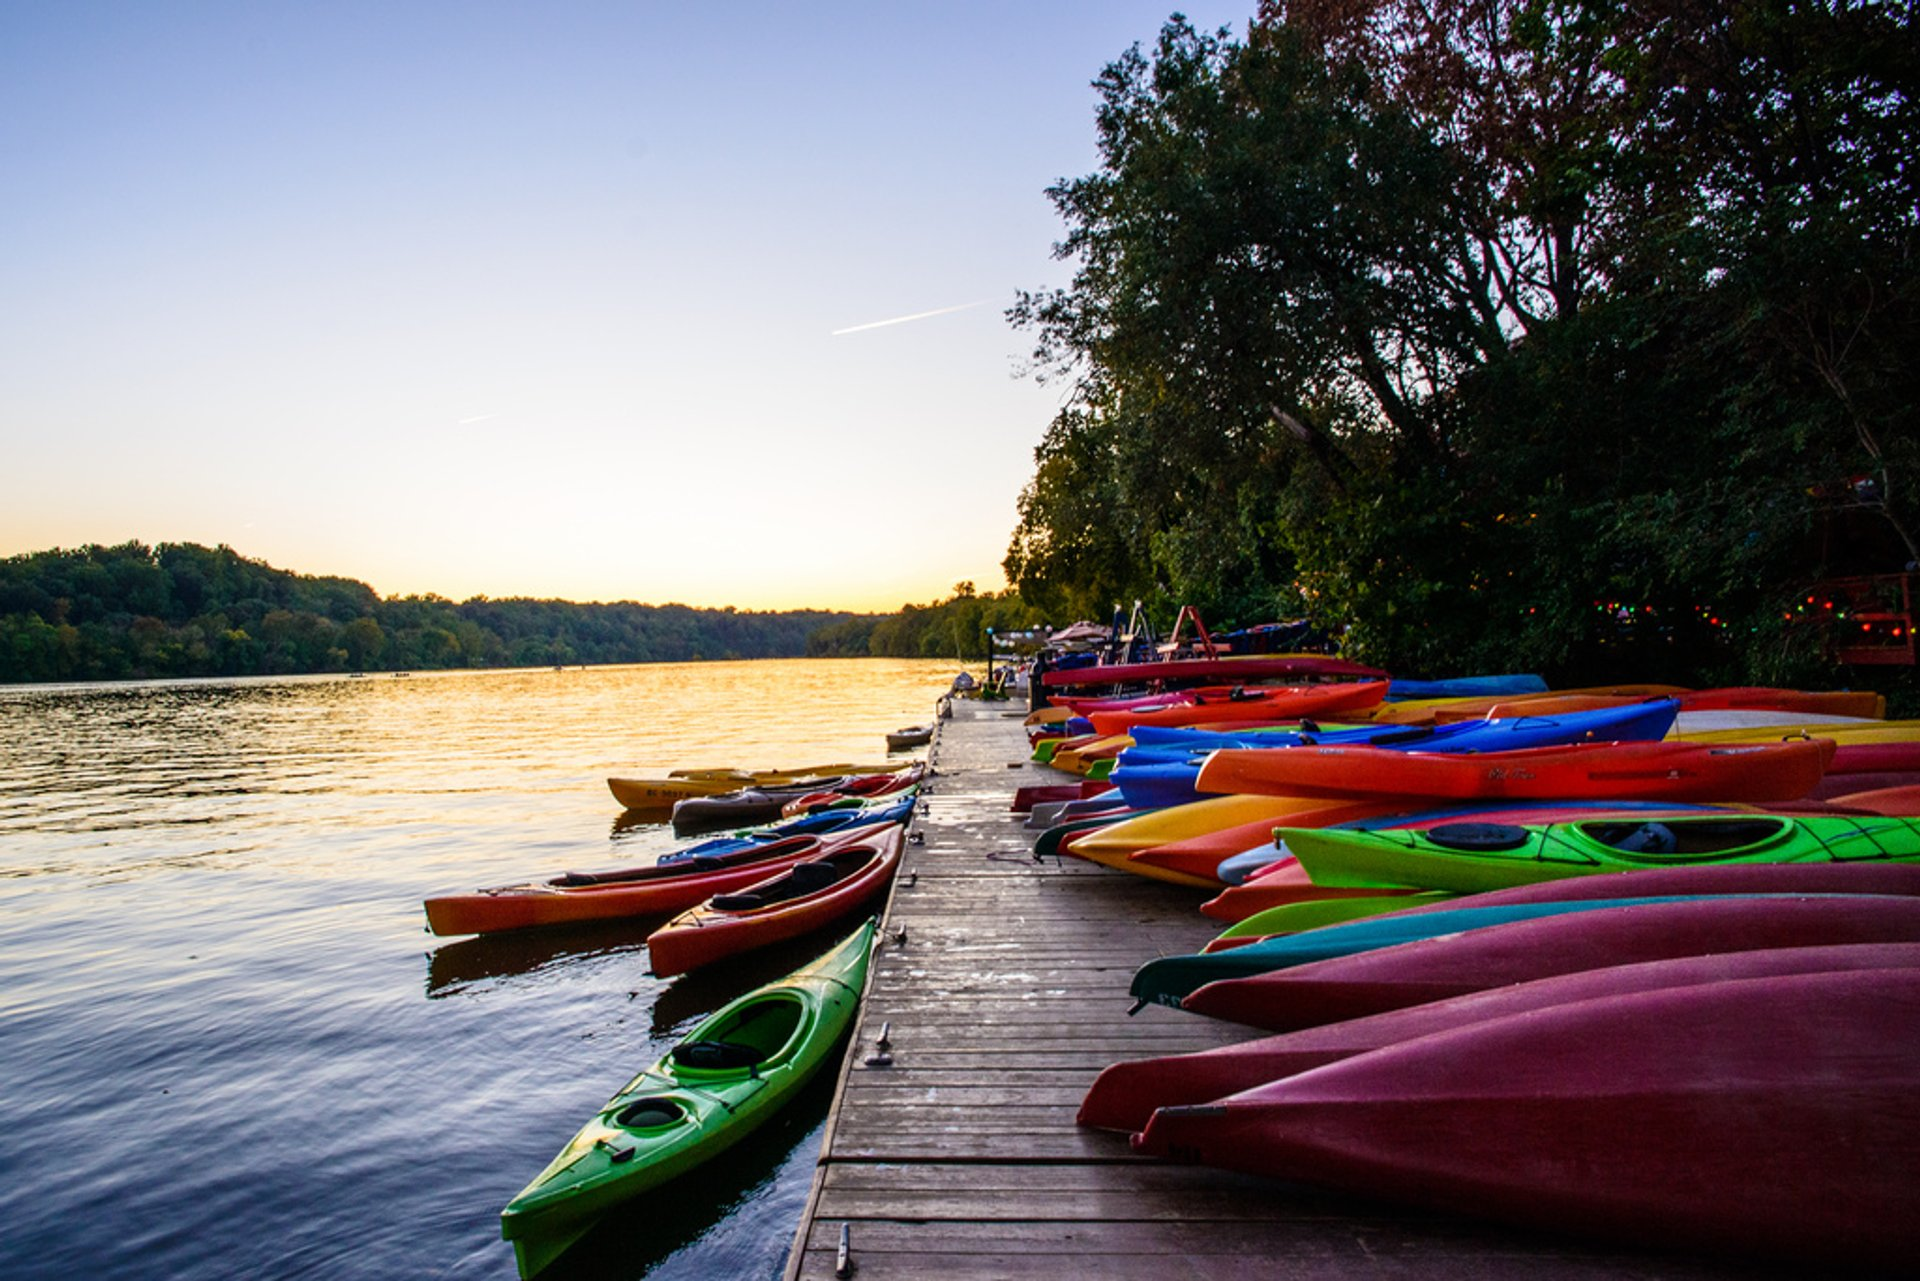 Best time to see Kayaking, Paddling, and Canoeing on the Potomac in Washington, D.C. 2020